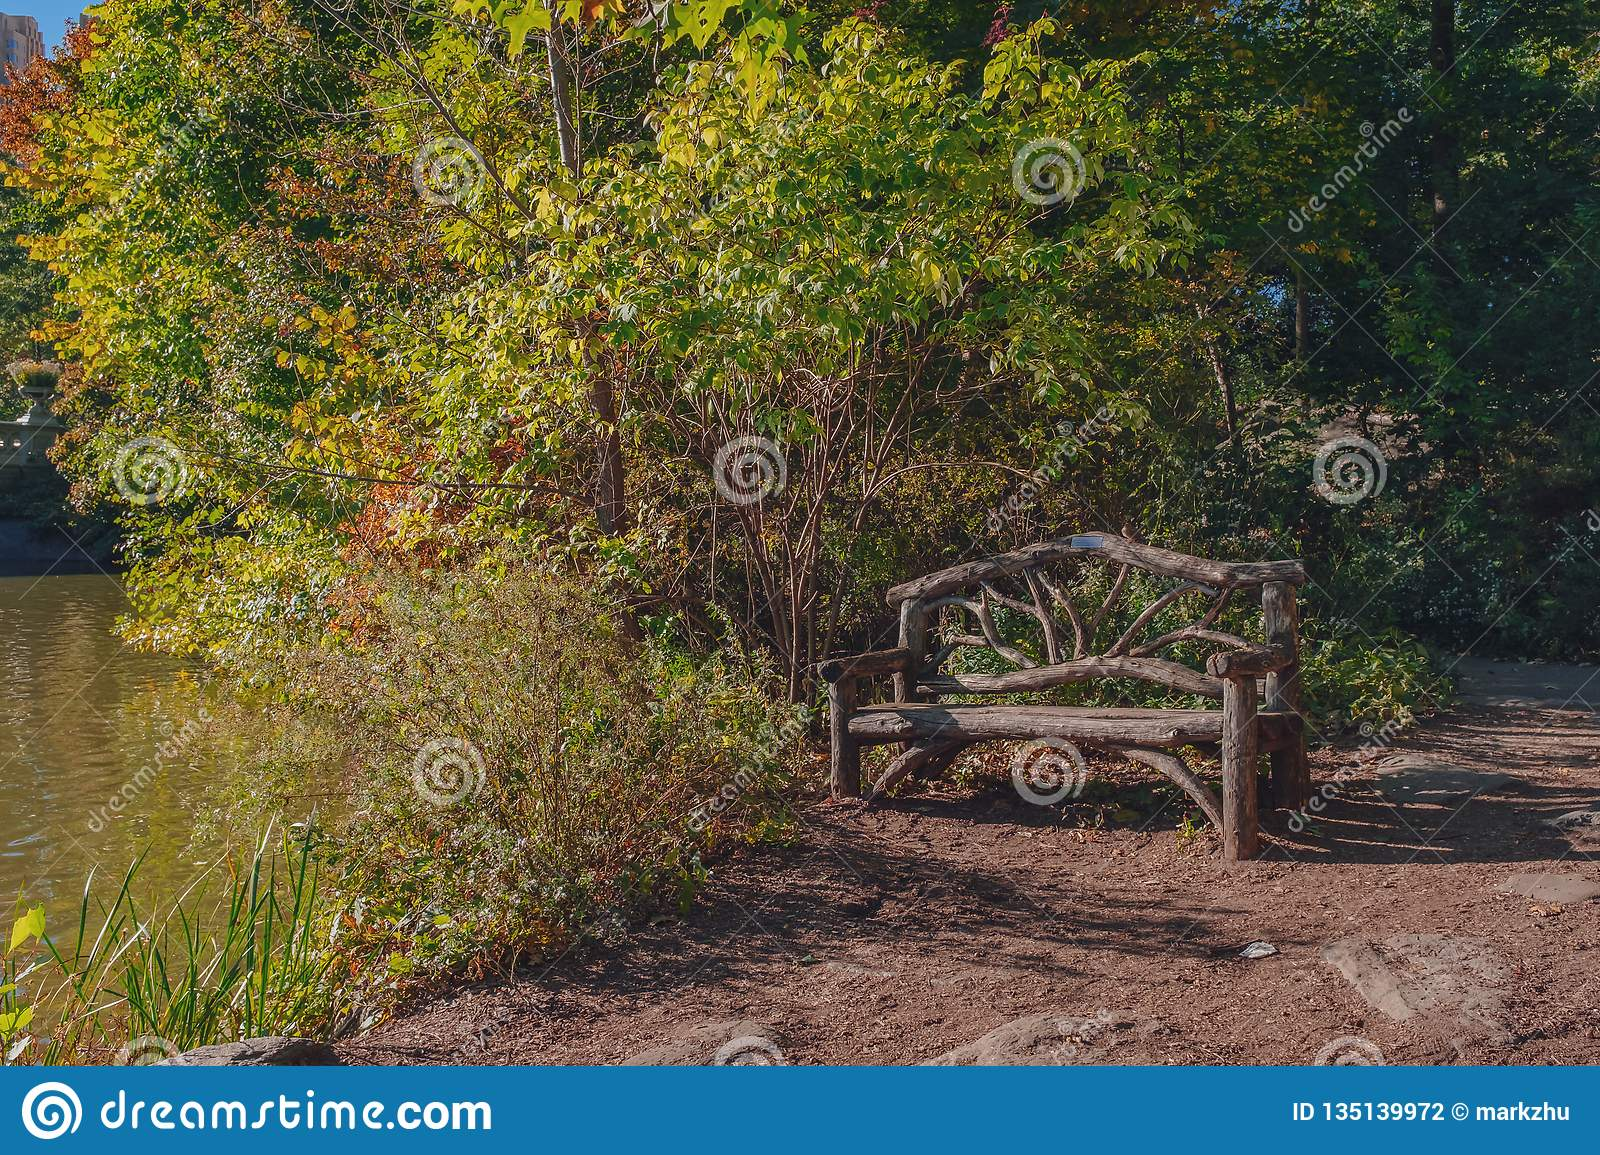 Empty Wooden Bench By Water And Trees, In Central Park, New